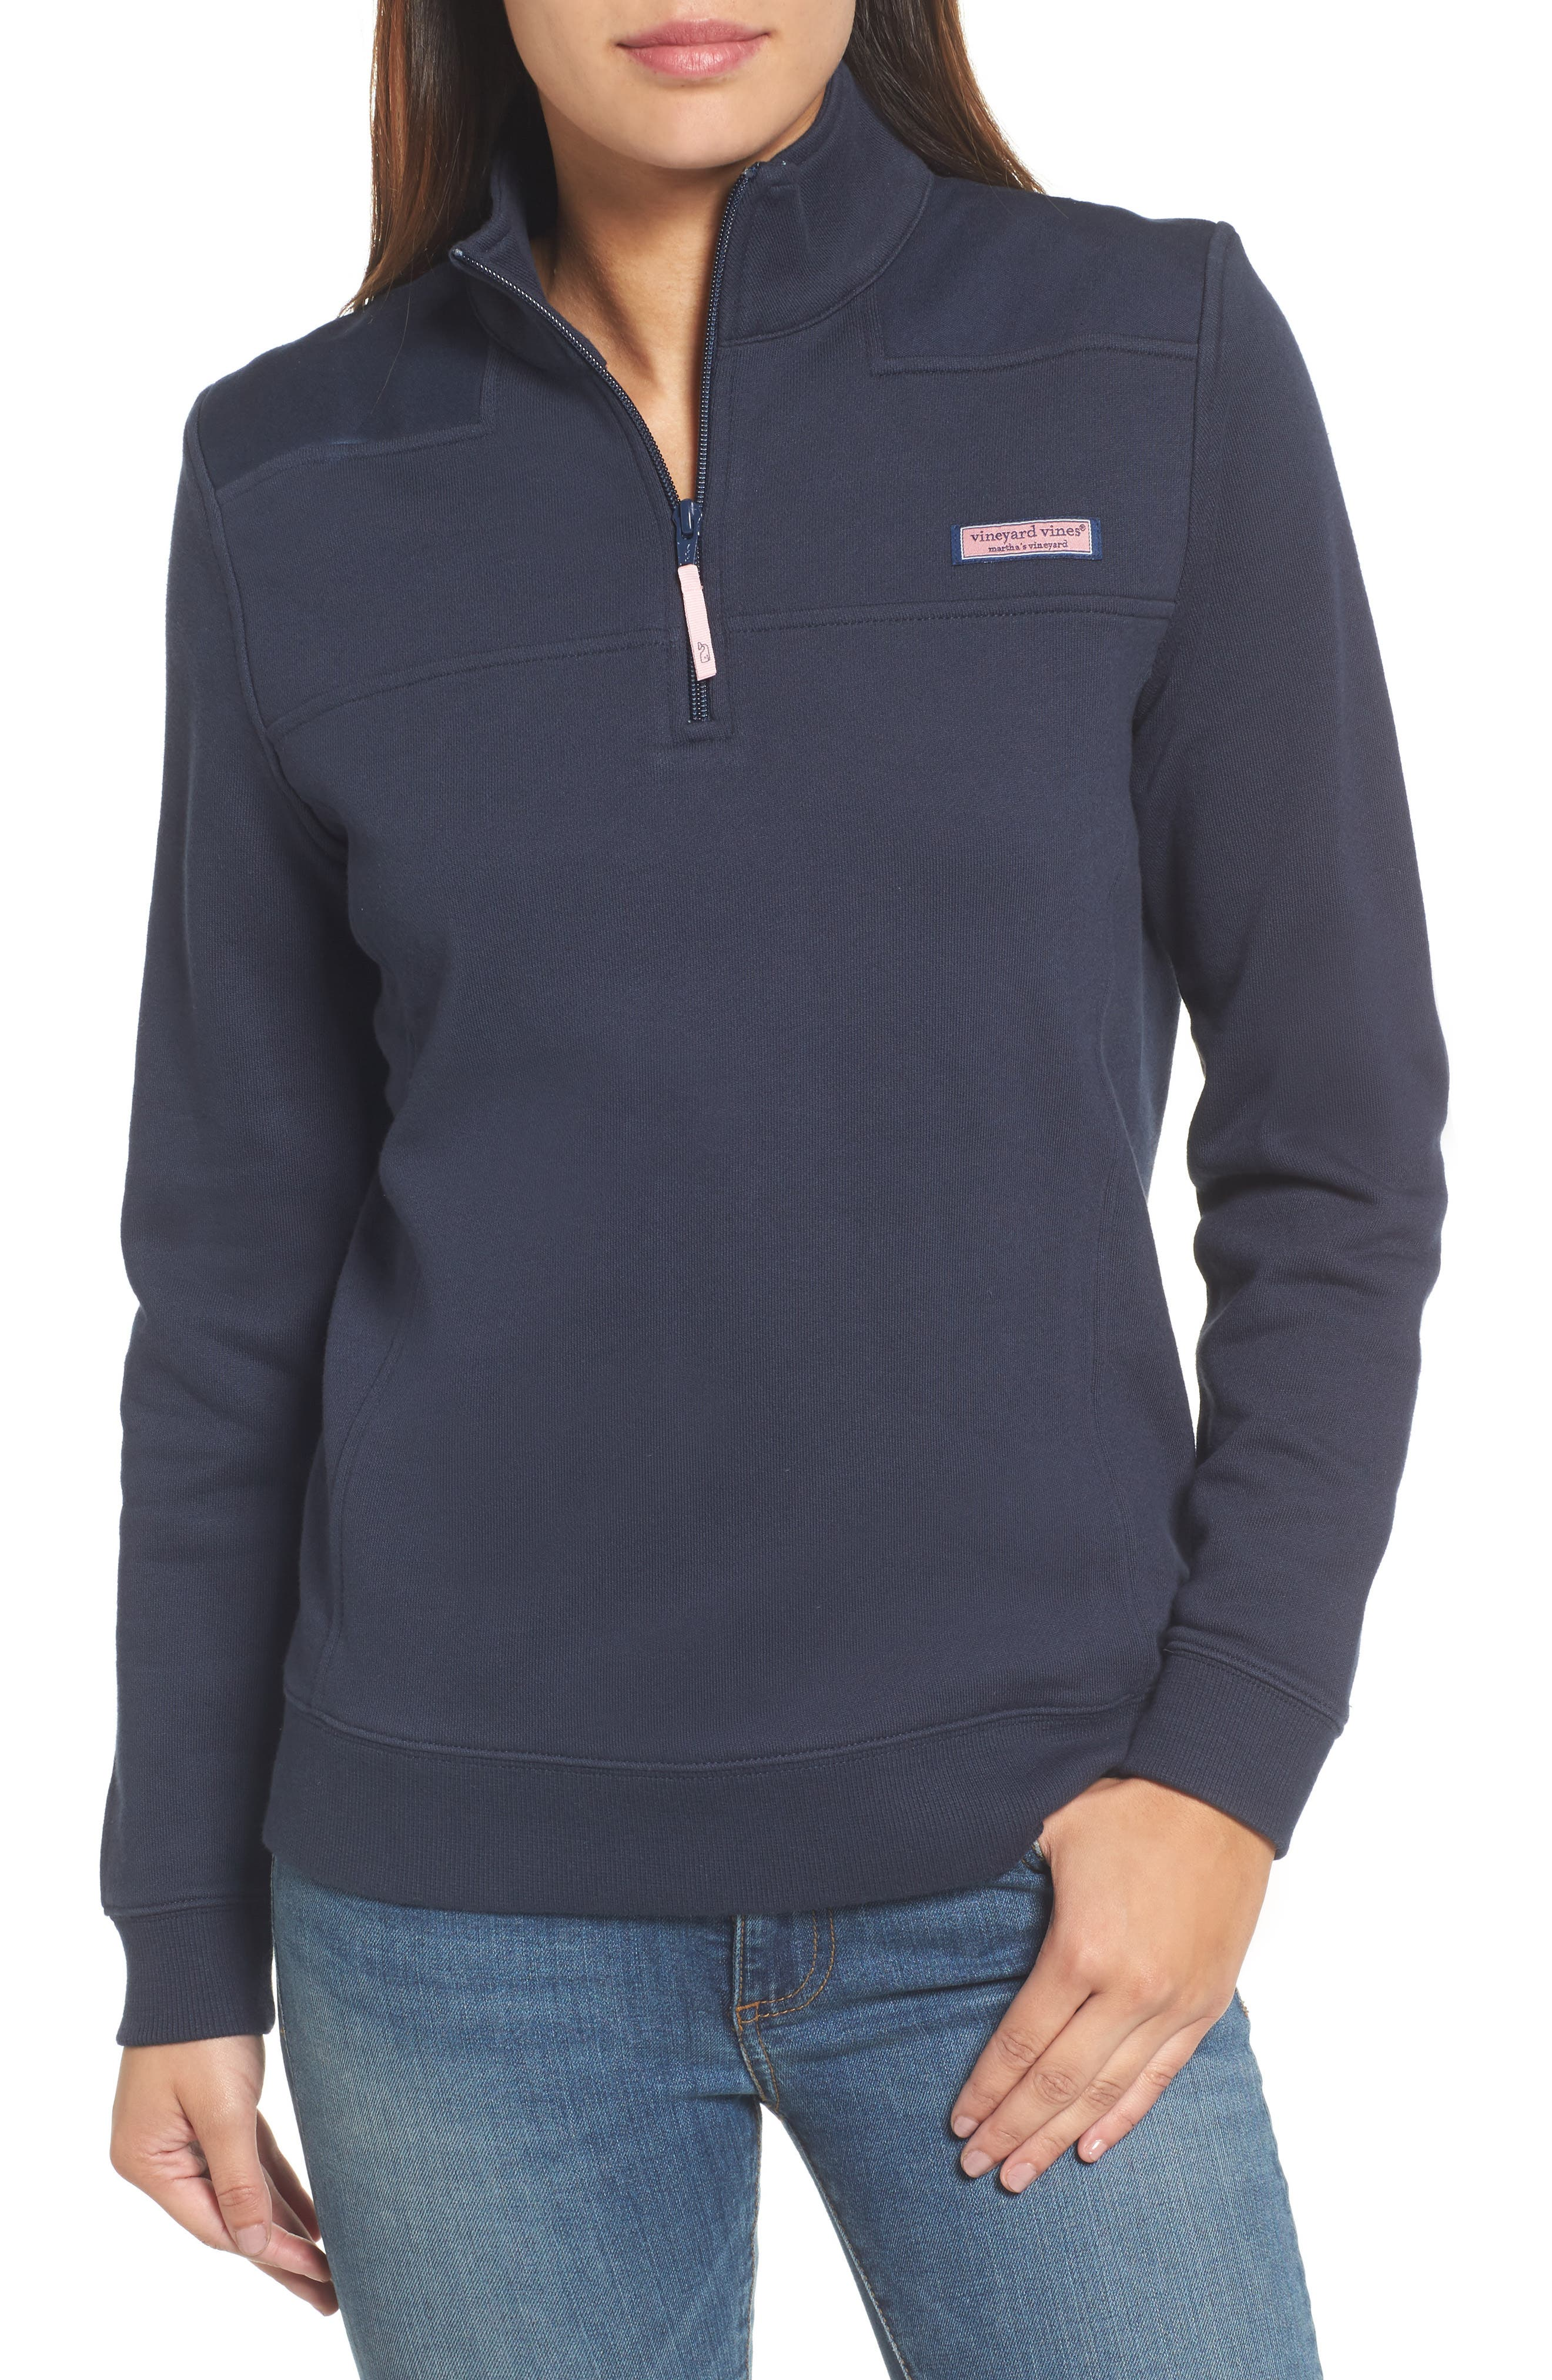 Alternate Image 1 Selected - vineyard vines Shep Half Zip French Terry Pullover